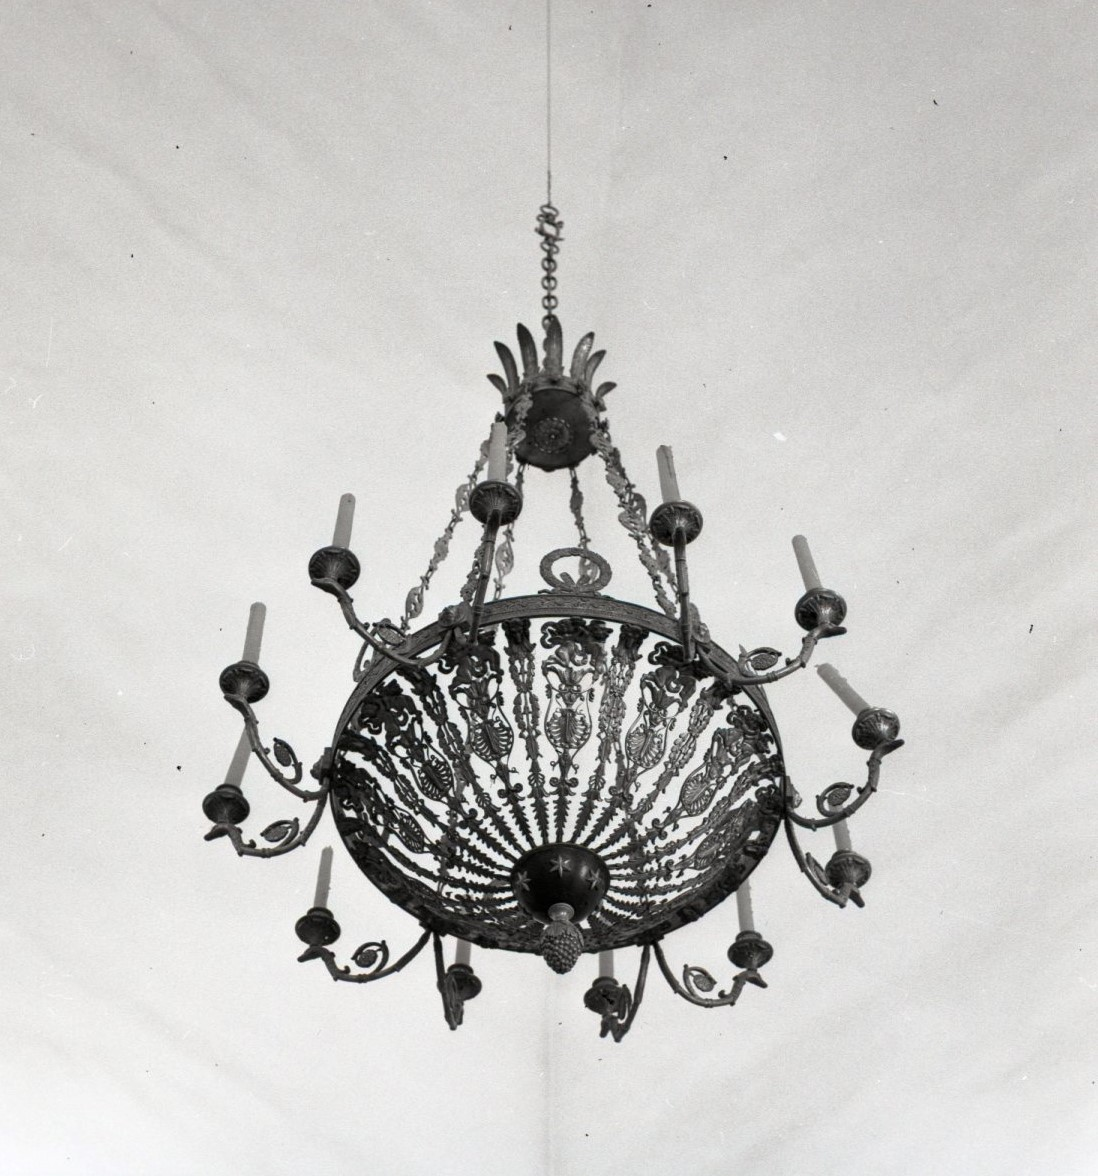 Chandelier at the Vilnius Town Hall. Photo by Jonas Šaparauskas, 1973, in: Kultūros paveldo centro biblioteka, f. 41, ap.1, Nr. 1540